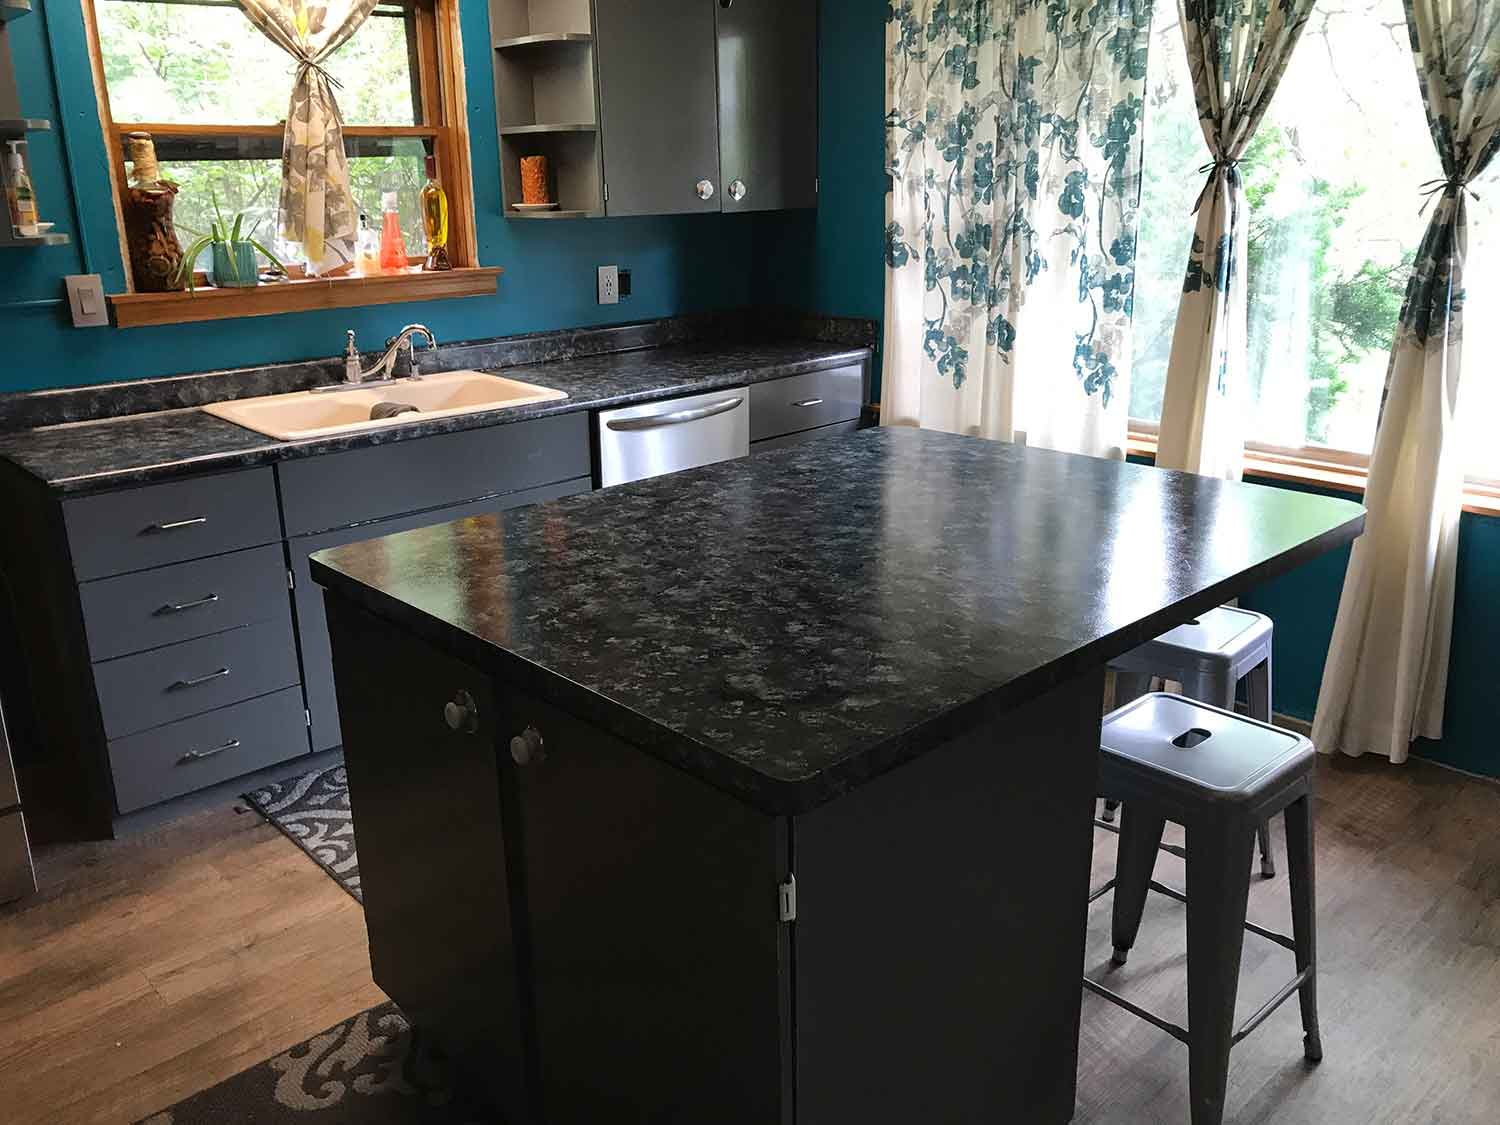 paint an island counter top like granite